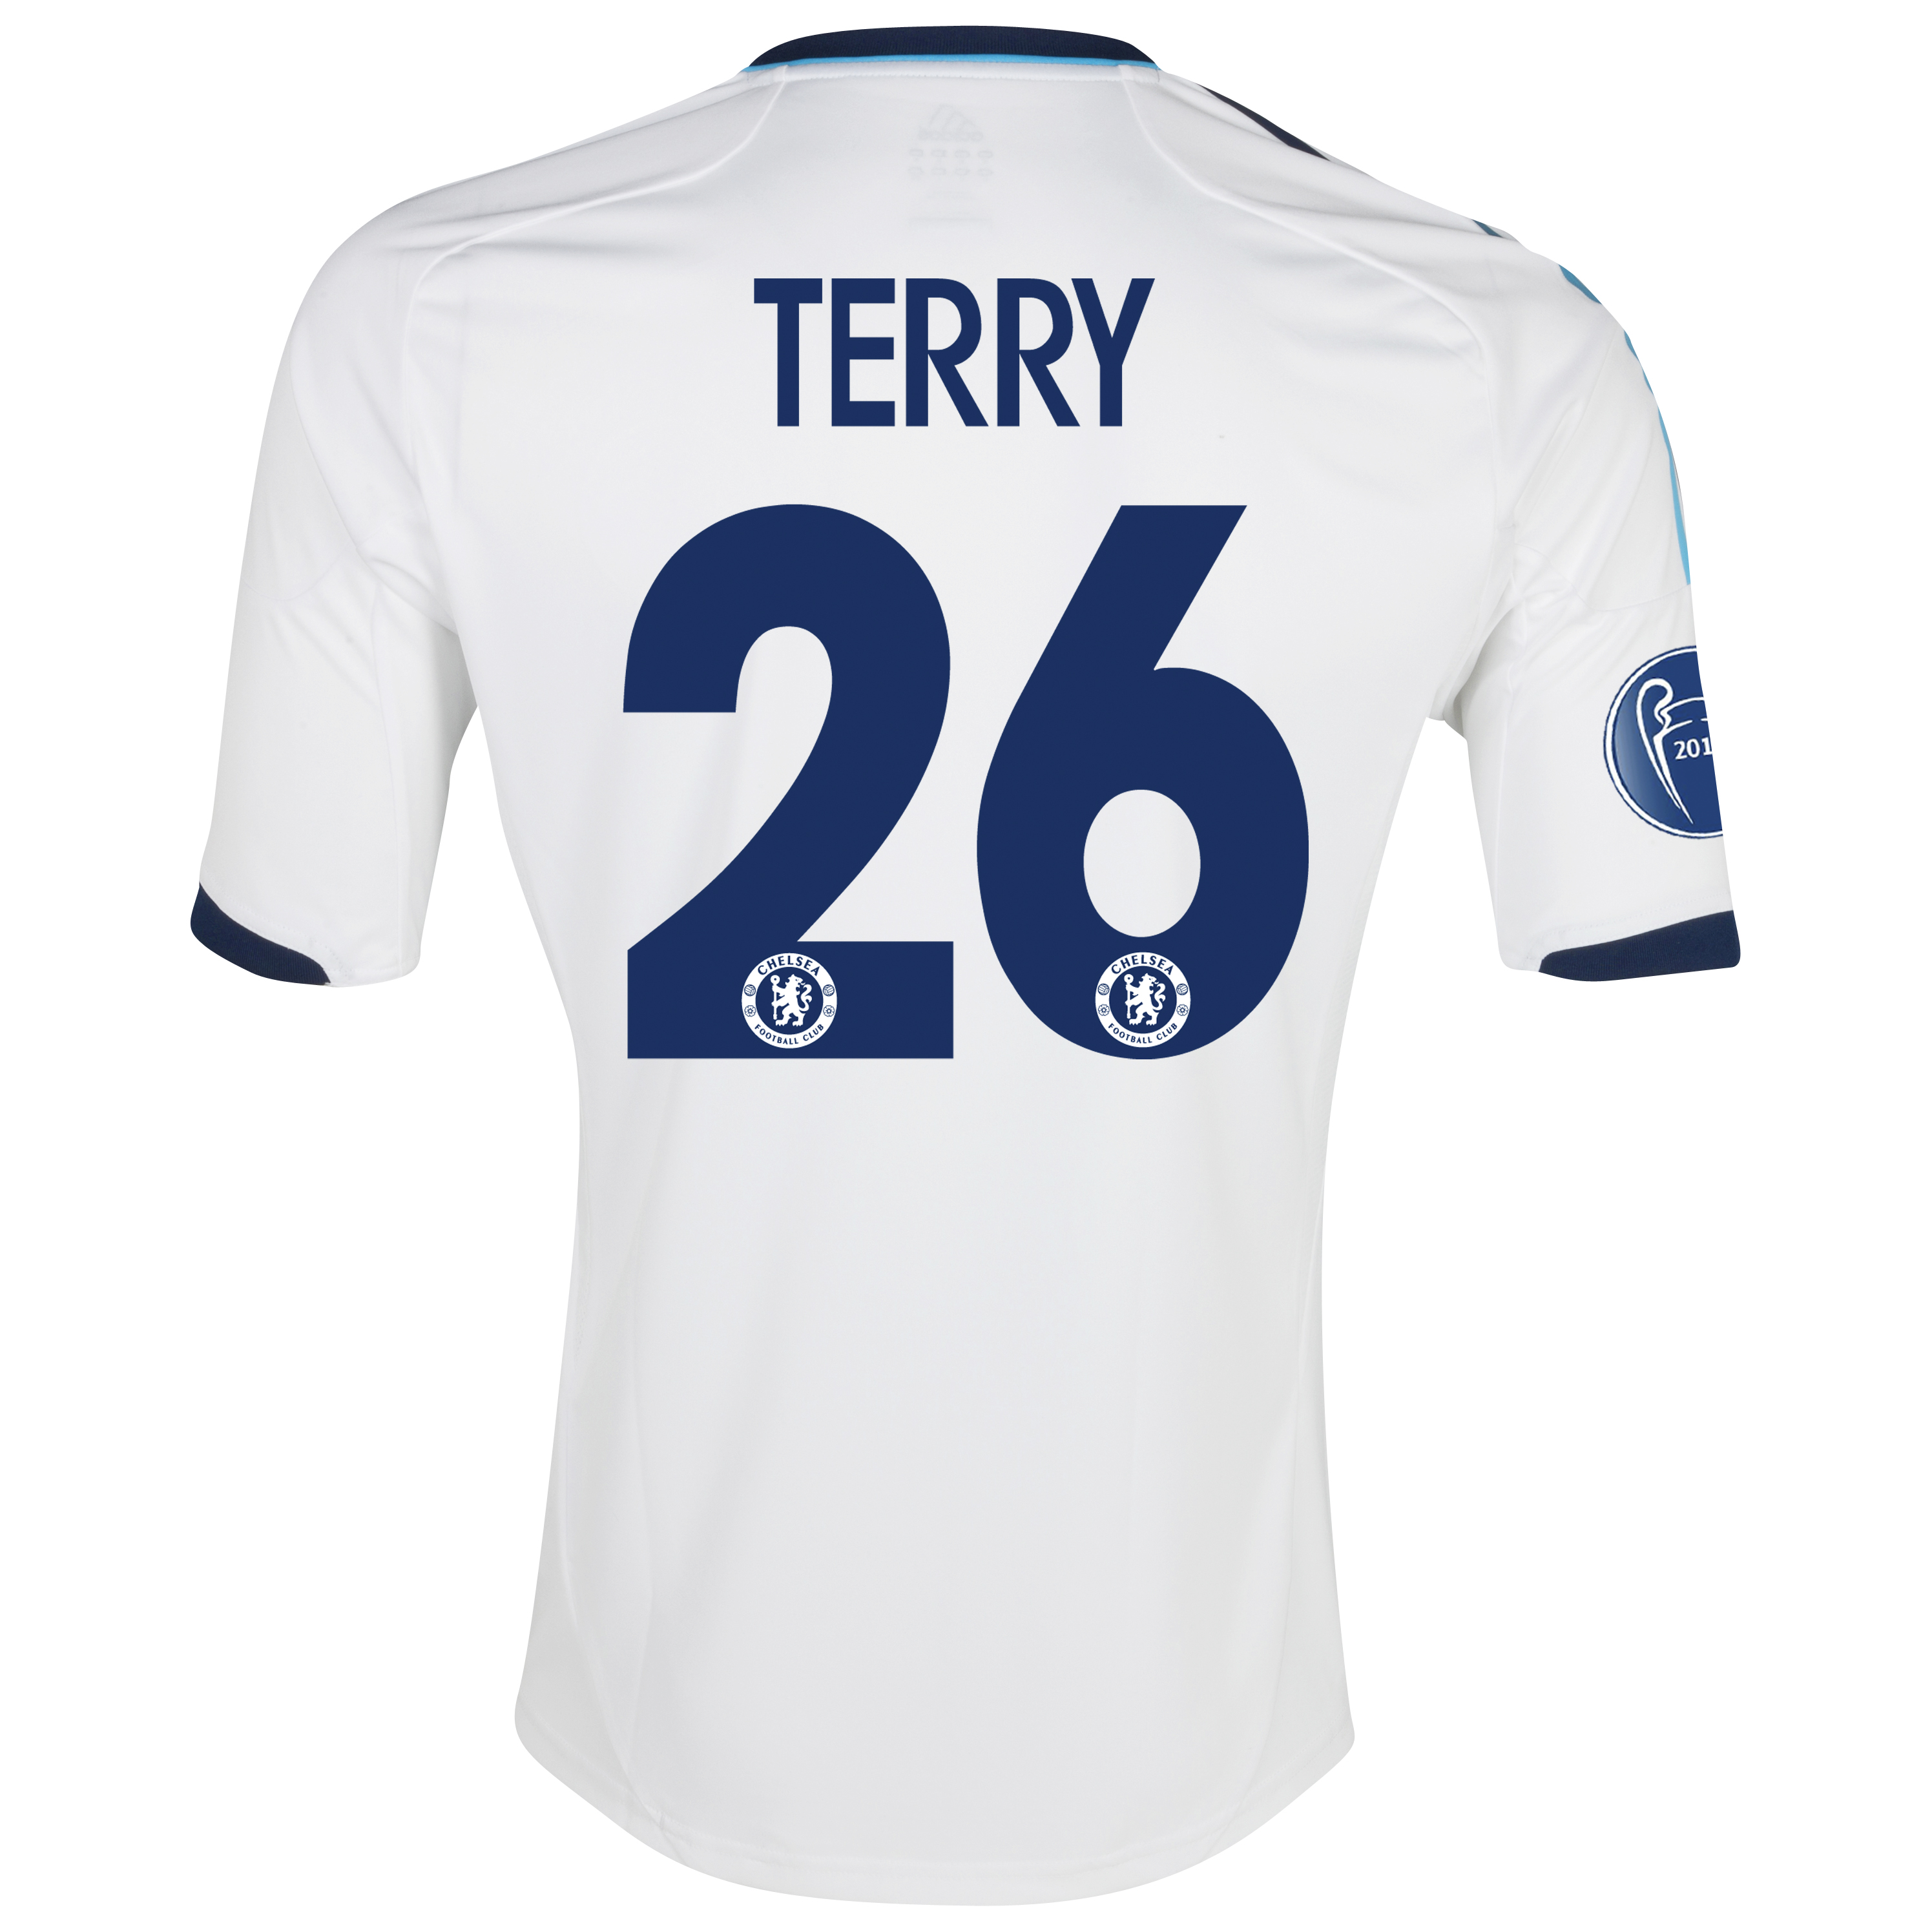 Chelsea UEFA Champions League Away Shirt 2012/13 - Kids with Terry 26 printing